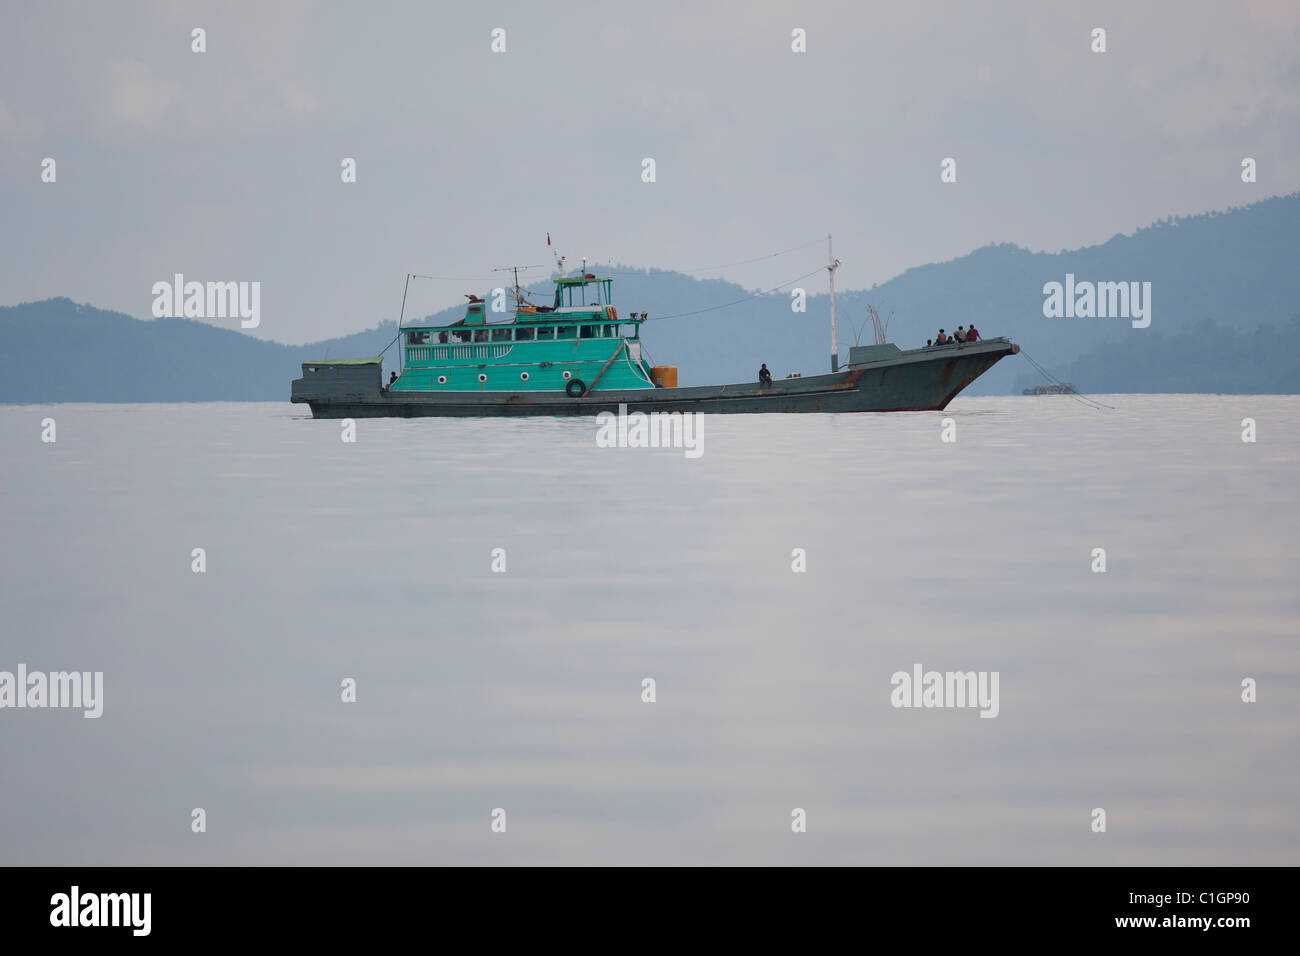 Boat off North Sulawesi, Indonesia - Stock Image